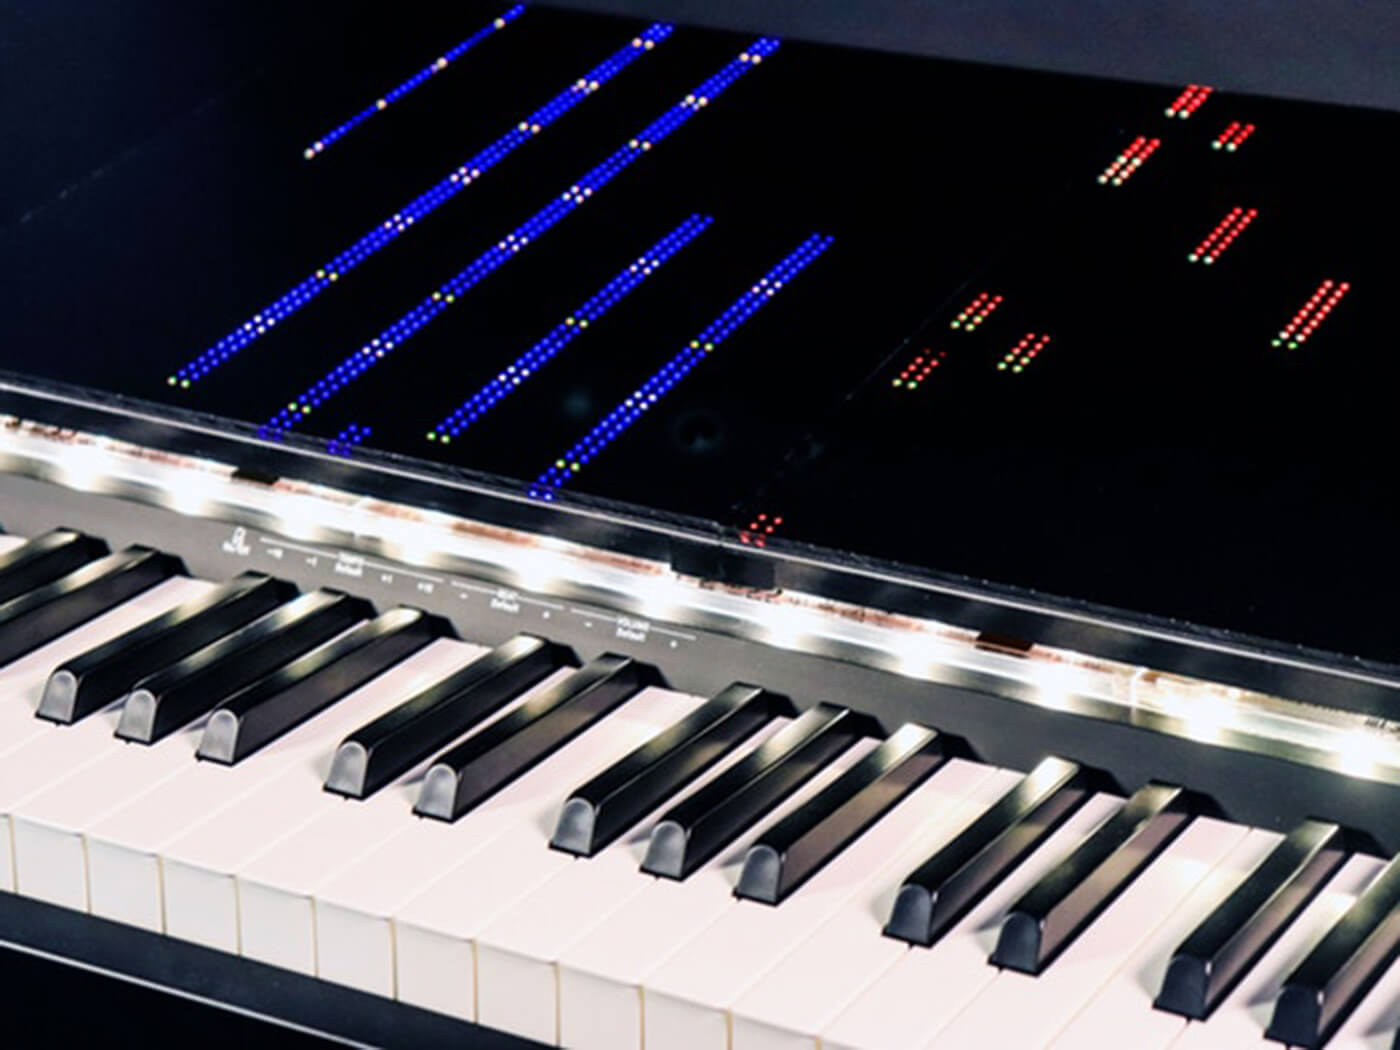 ForteRight's Arcade gamifies piano-learning